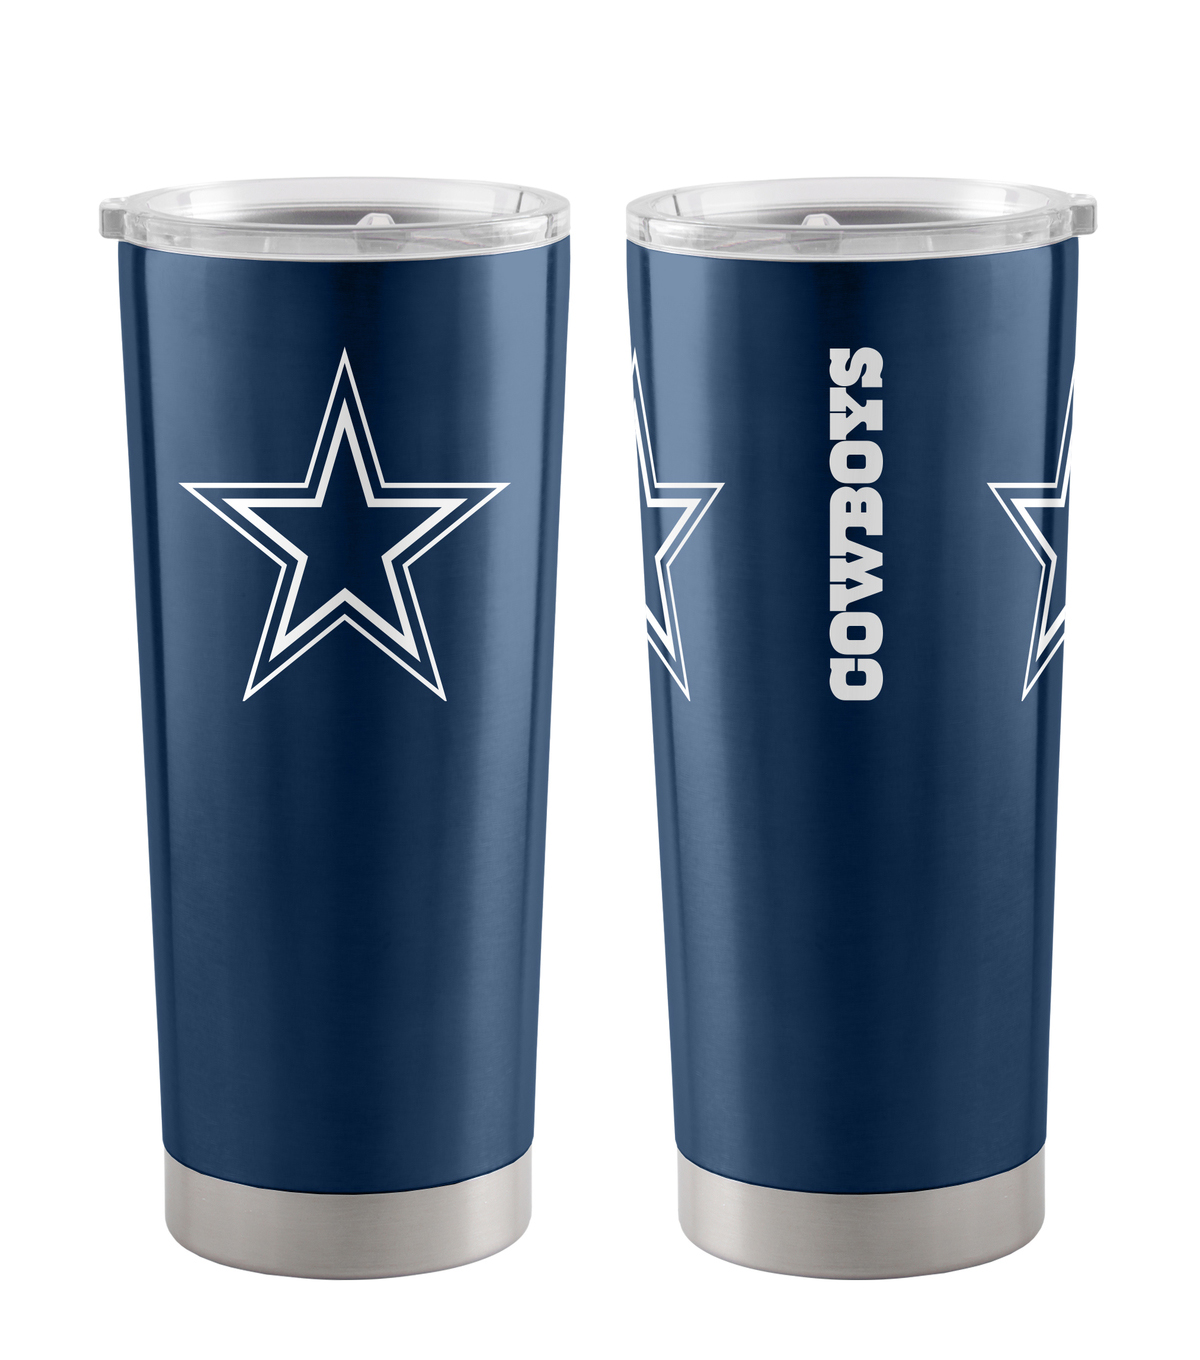 Dallas Cowboys 20 oz Insulated Stainless Steel Tumbler